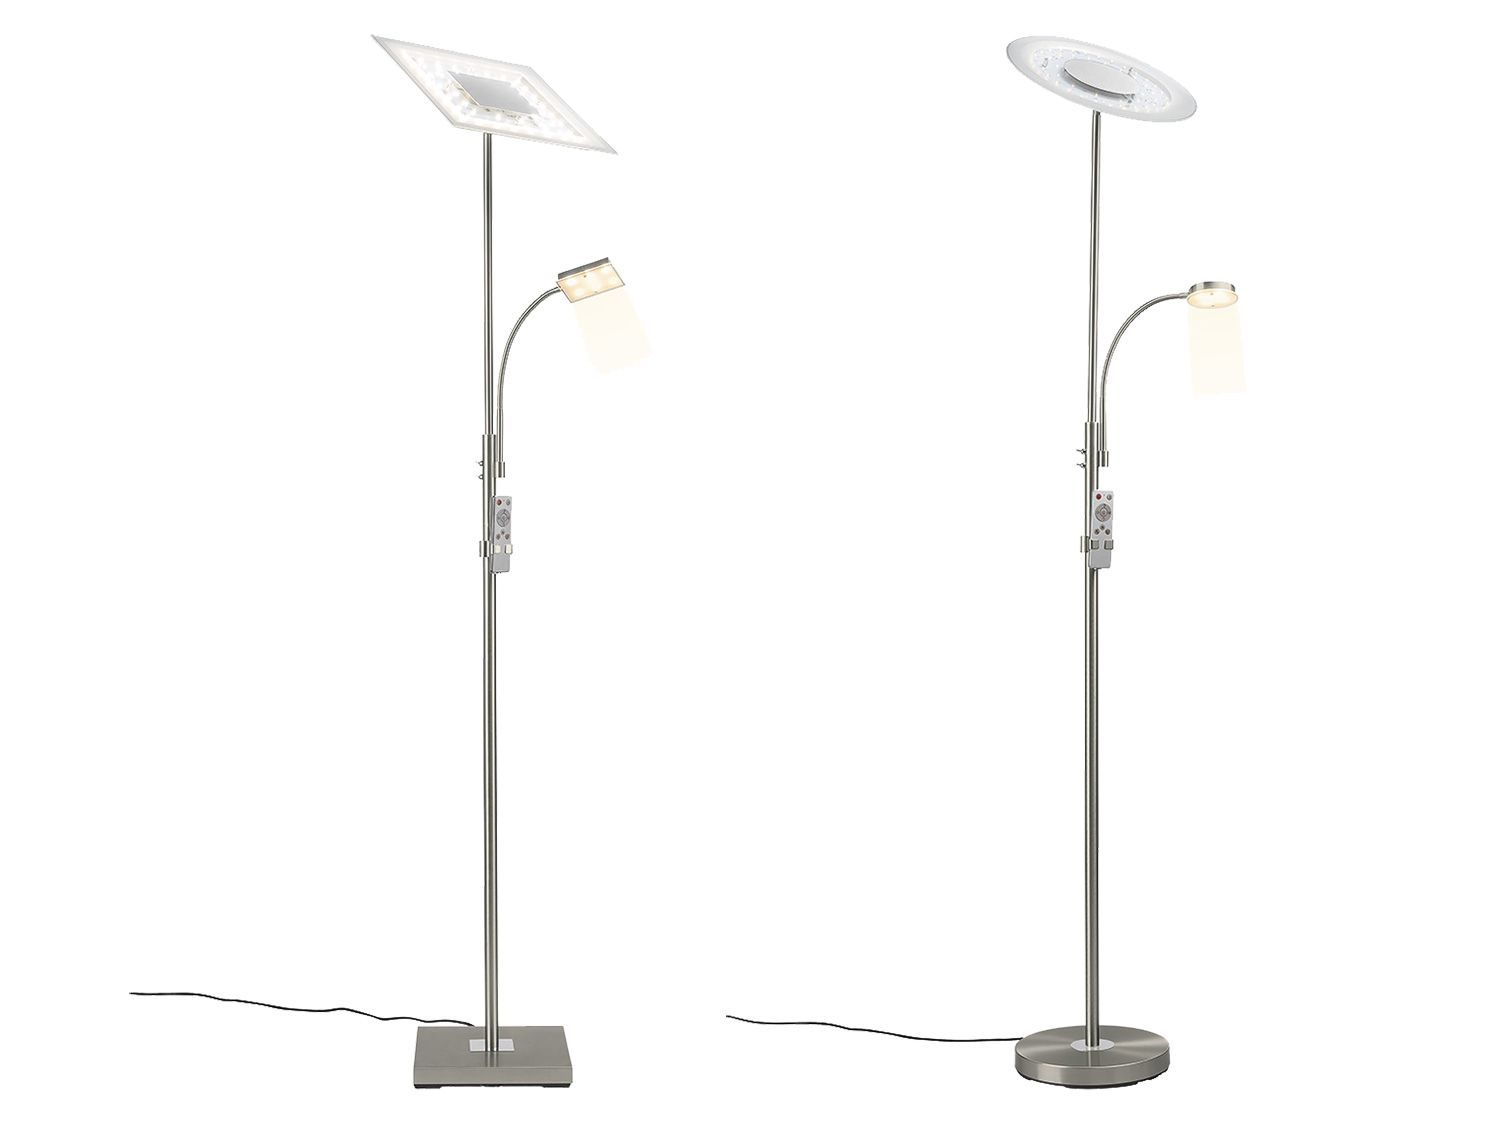 Full Size of Stehlampe Dimmbar Wohnzimmer Stehlampen Schlafzimmer Wohnzimmer Stehlampe Dimmbar